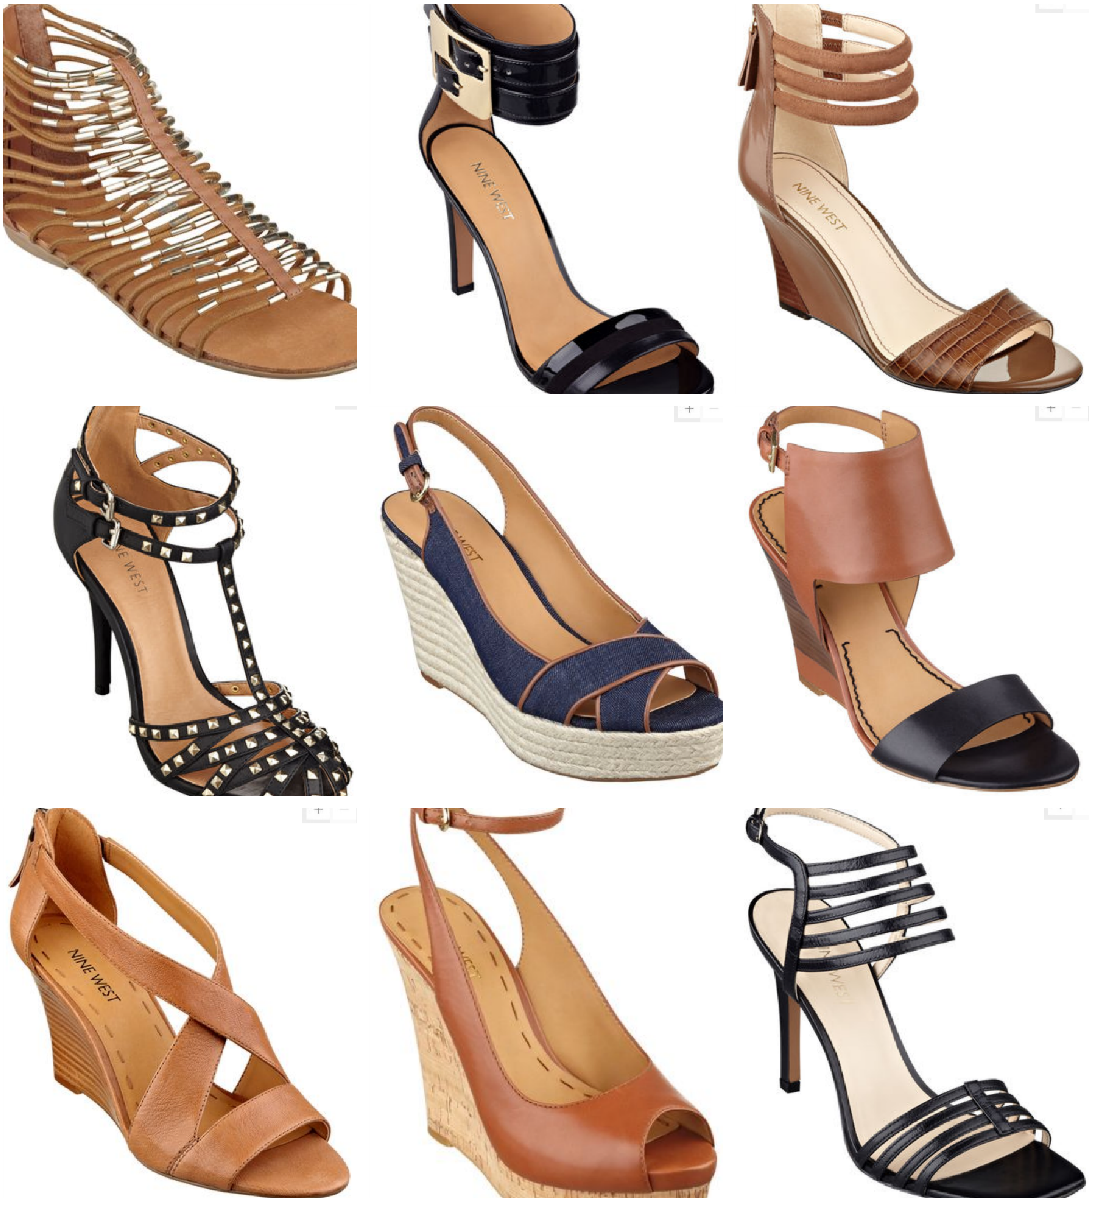 Sign up for new styles from Nine West